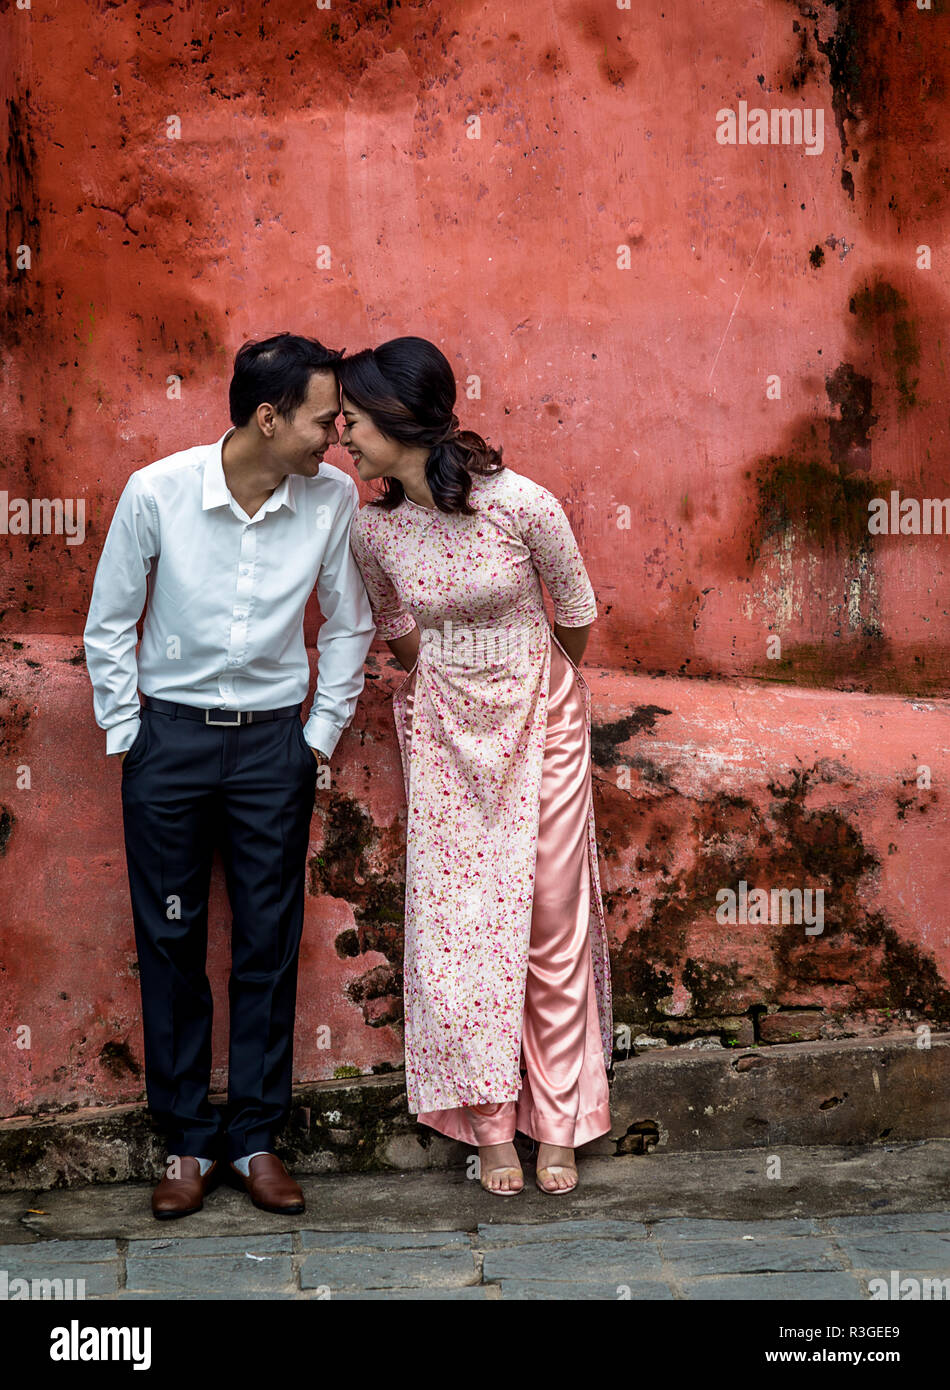 A man and woman at the Japanese Bridge in Hoi An Stock Photo